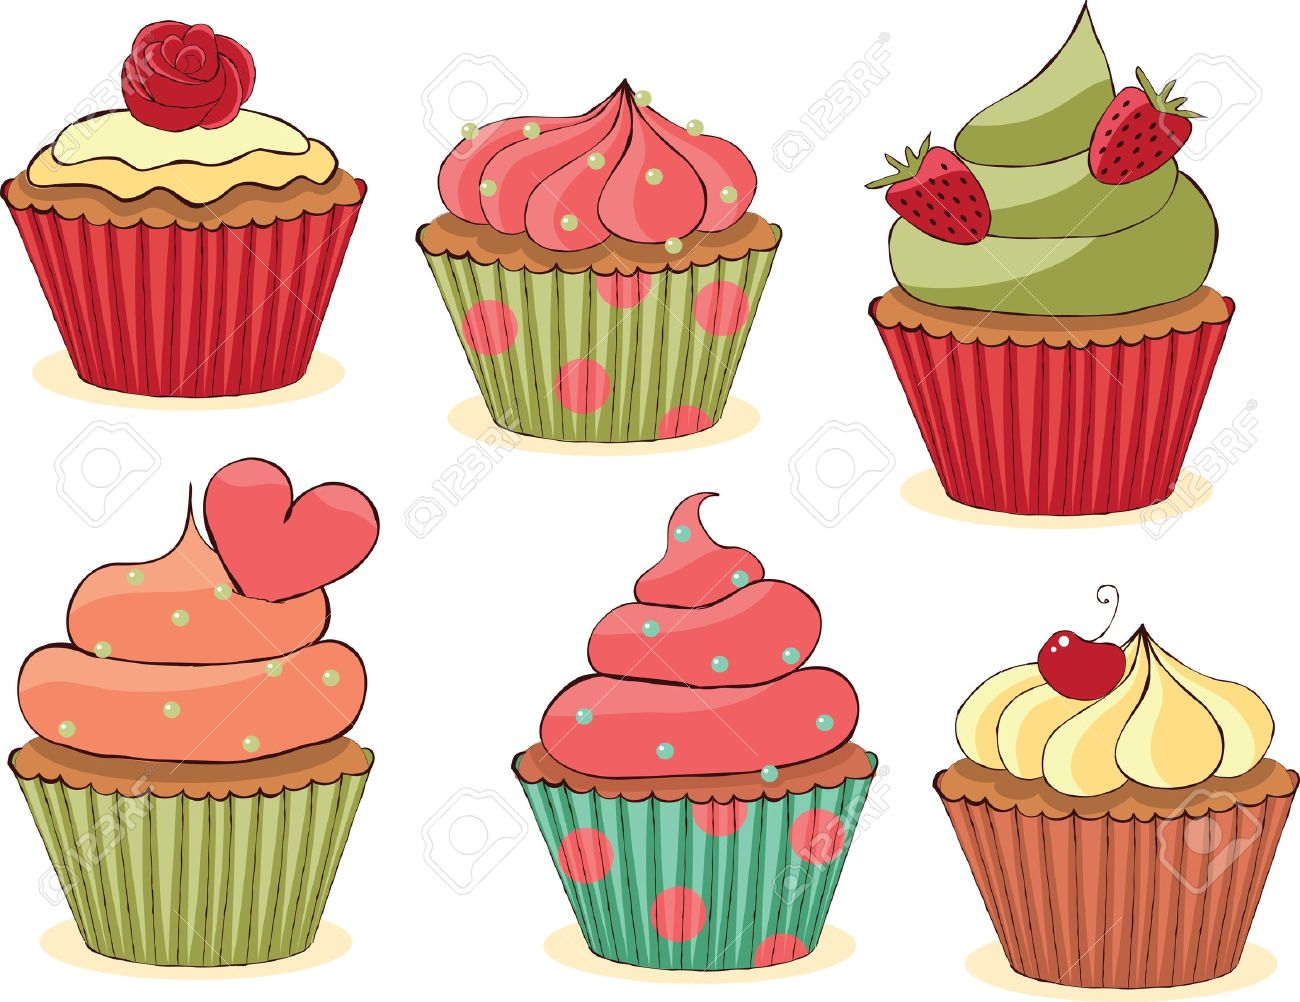 Sketchy yummy cupcakes set. CMYK with global colors vector illustration. Stock Vector - 10414444